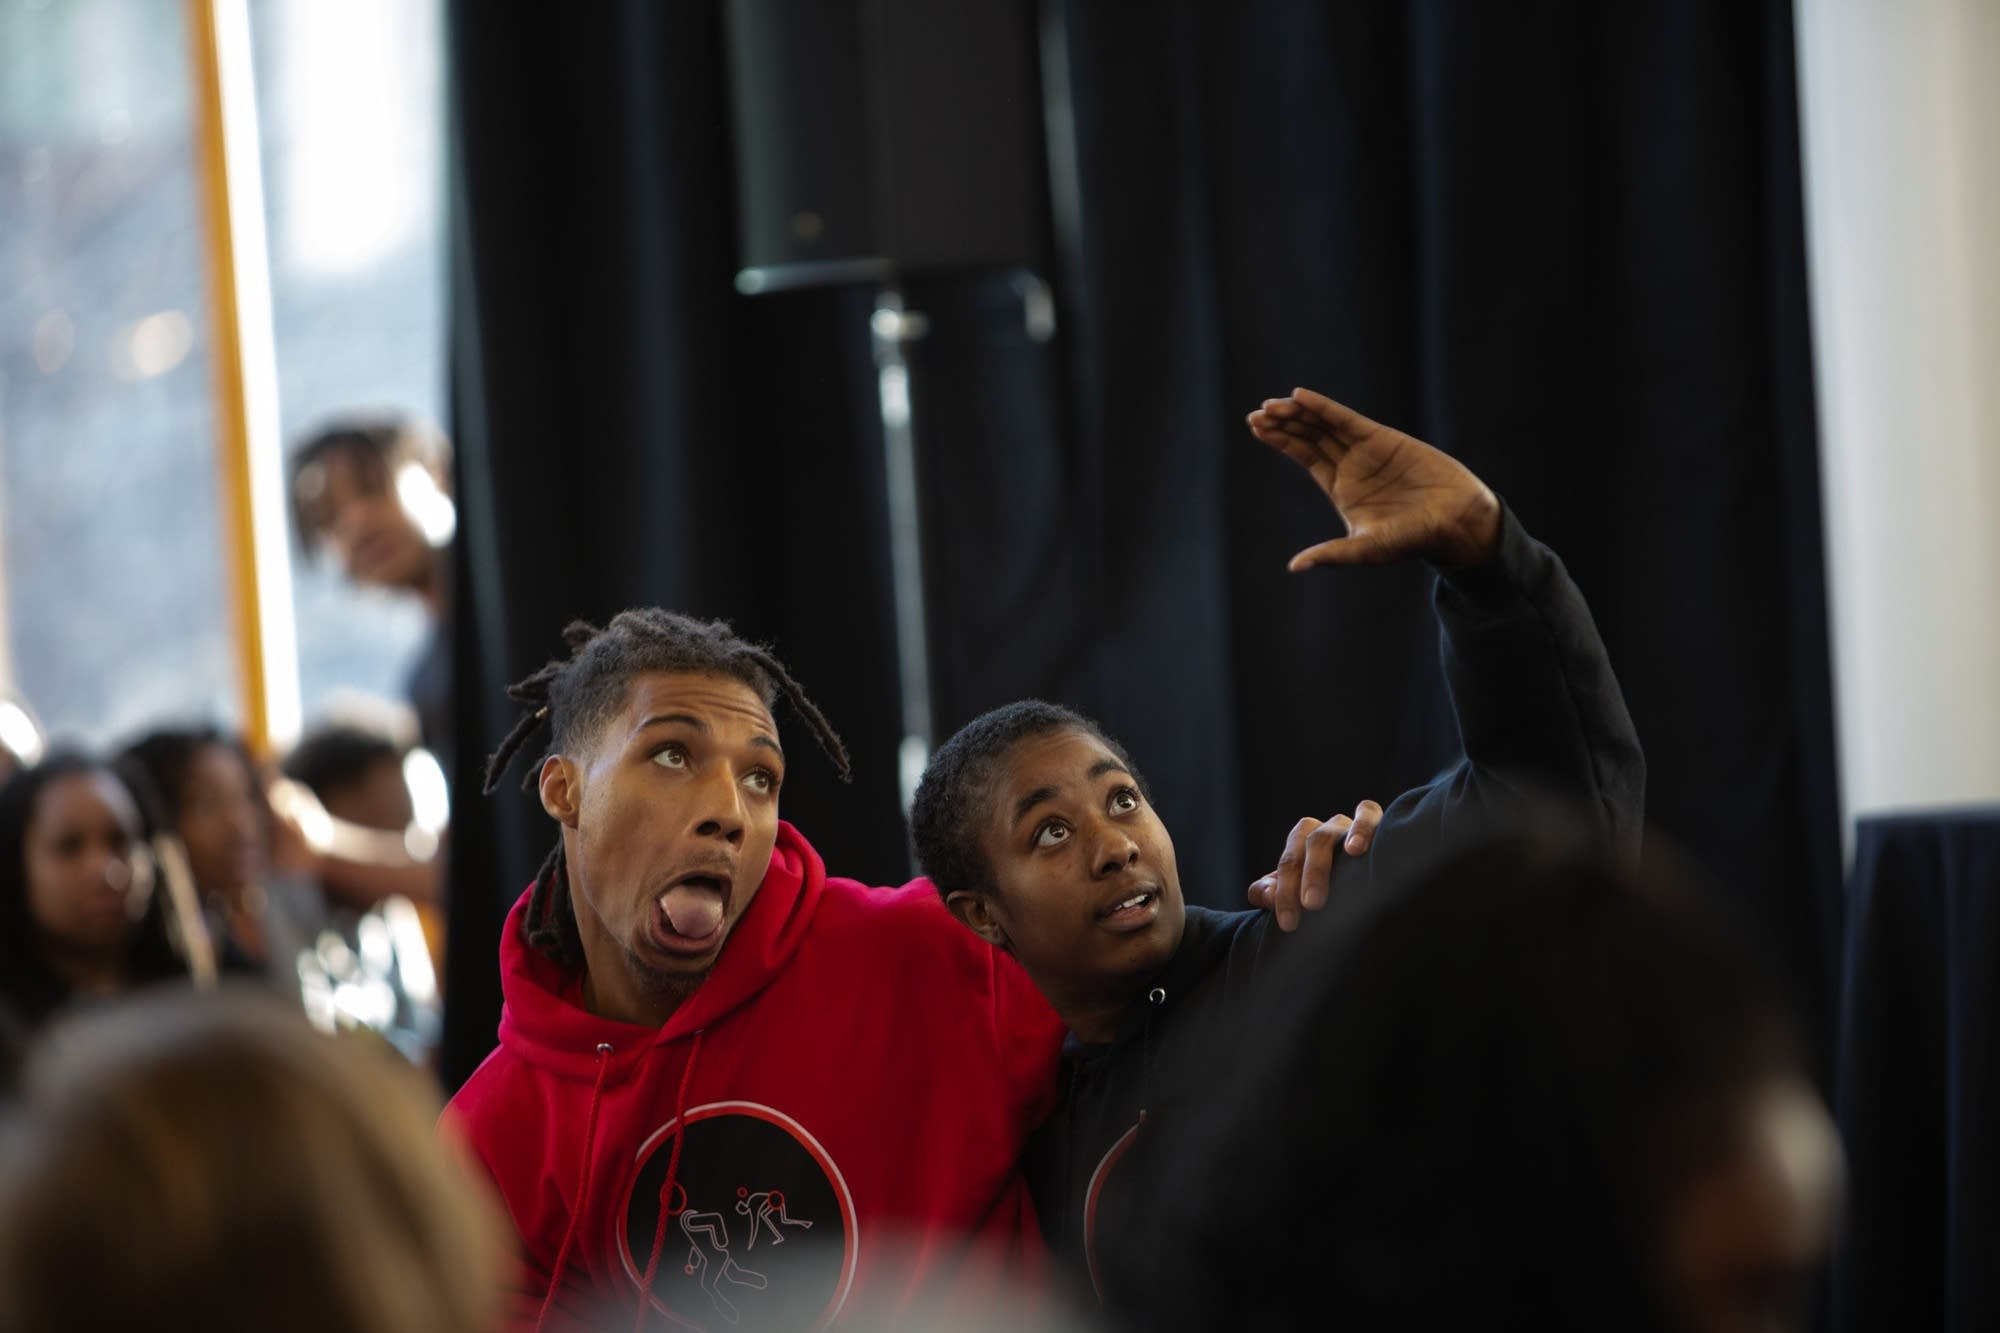 Darrius Strong and Gabby the Baddie perform during the MLK event.